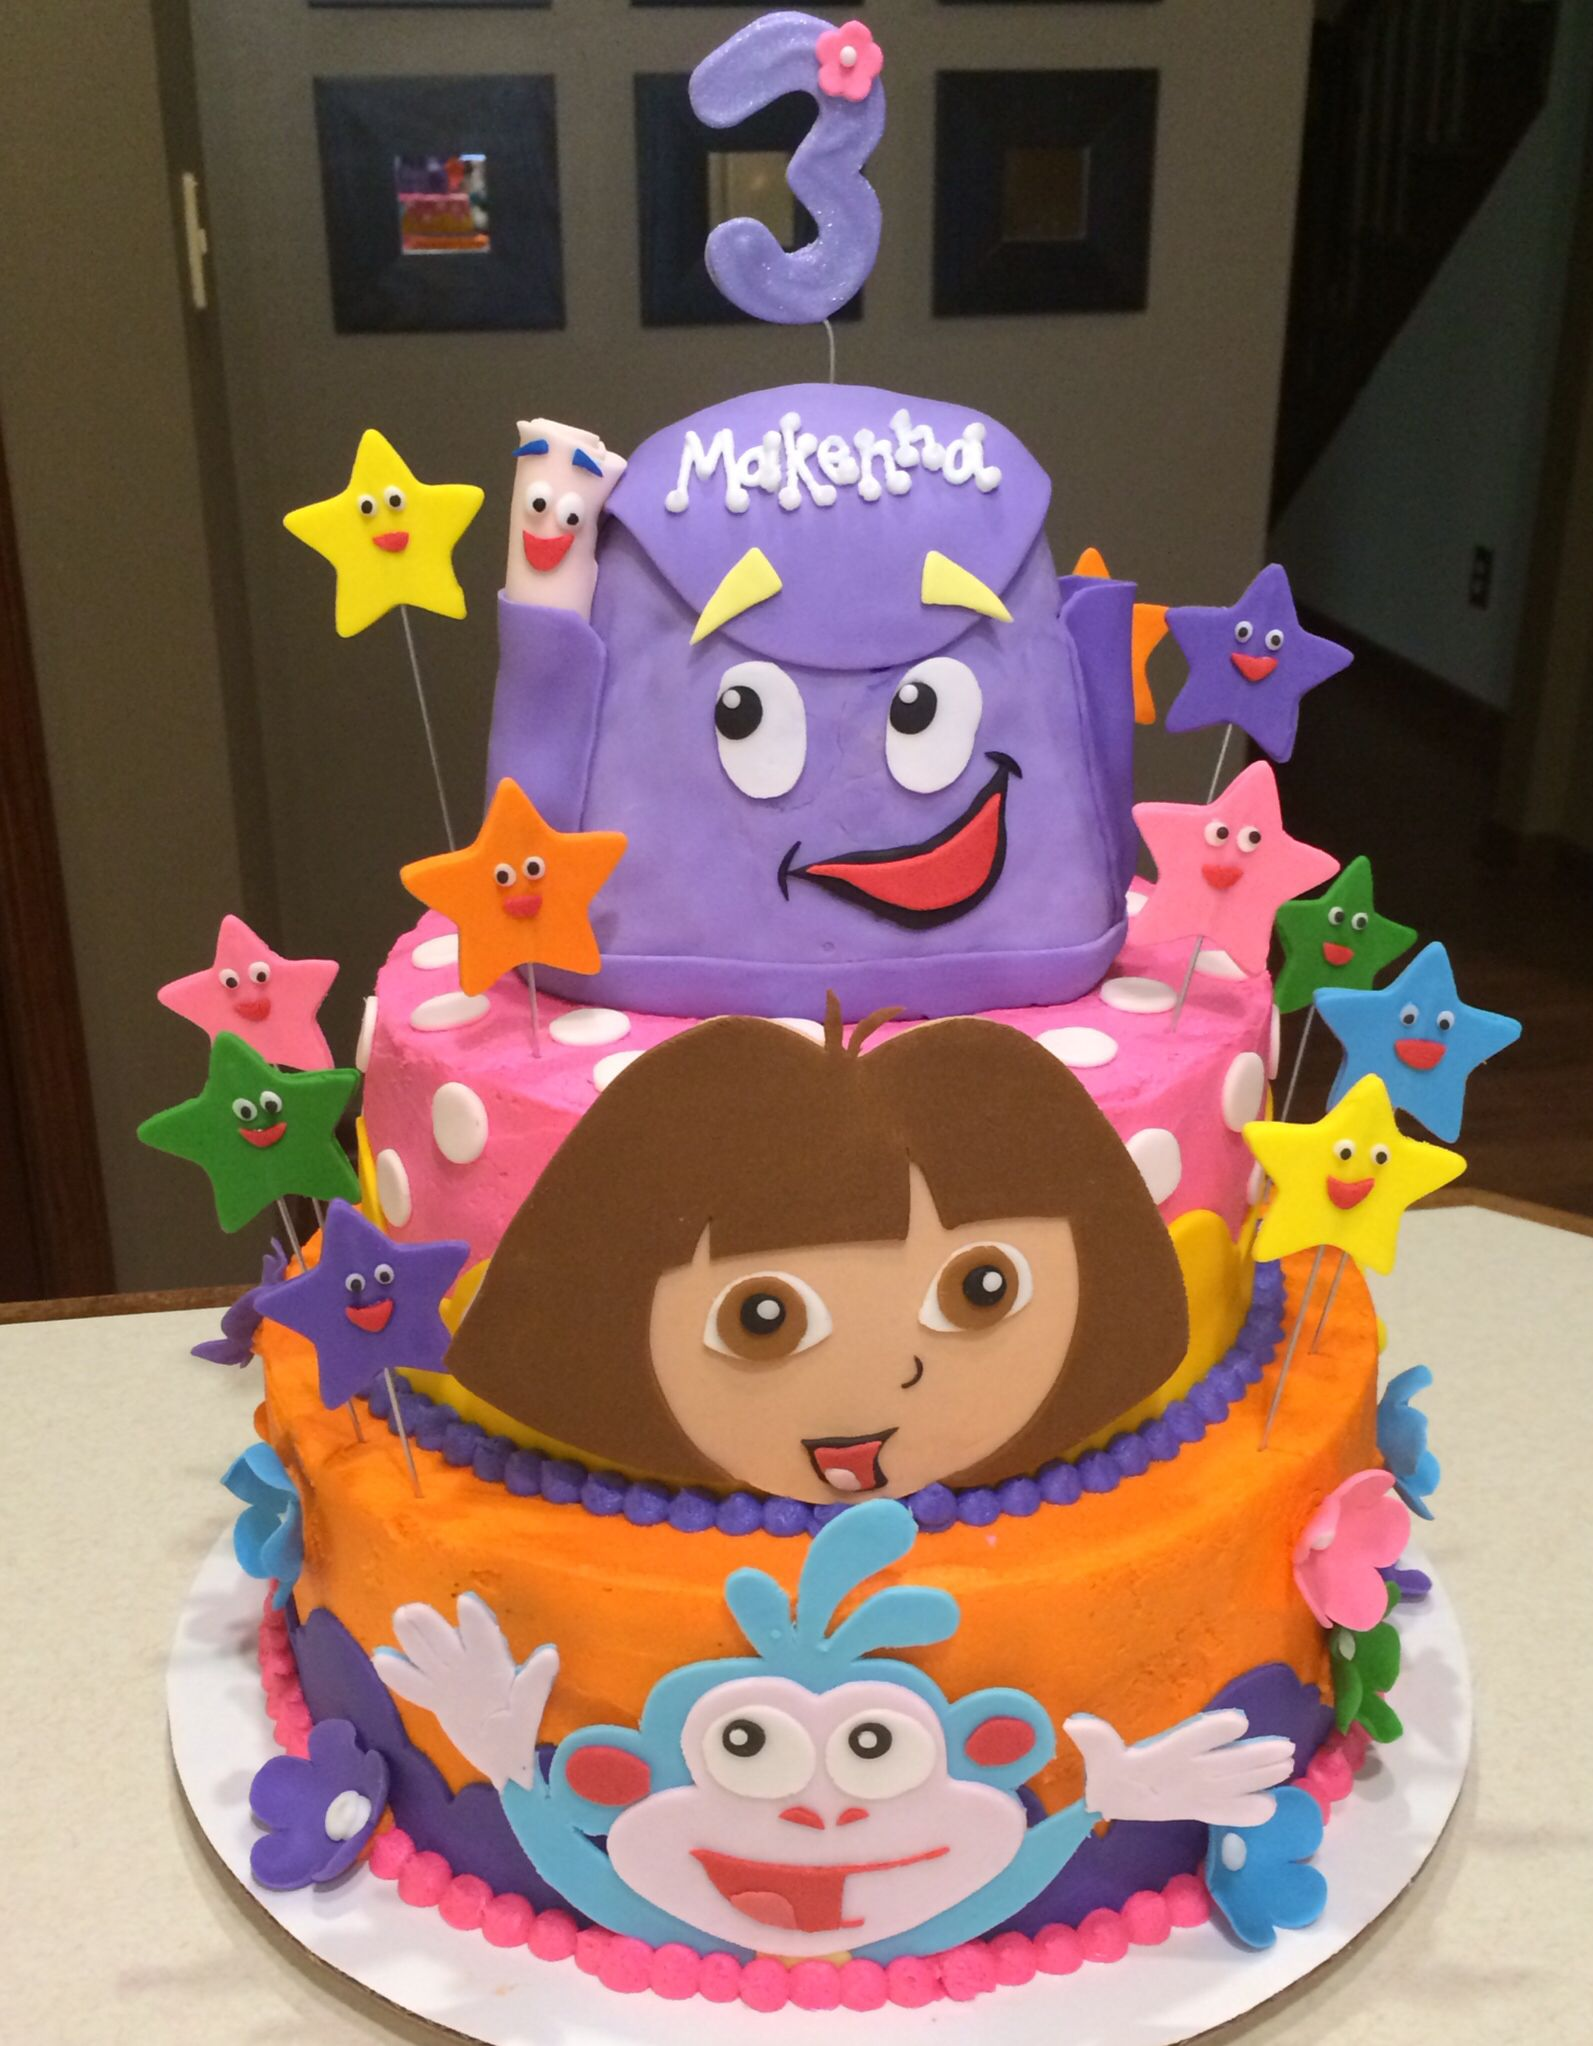 Swell Dora The Explorer Cake Verjaardag Feest Verjaardag Feest Themas Personalised Birthday Cards Veneteletsinfo